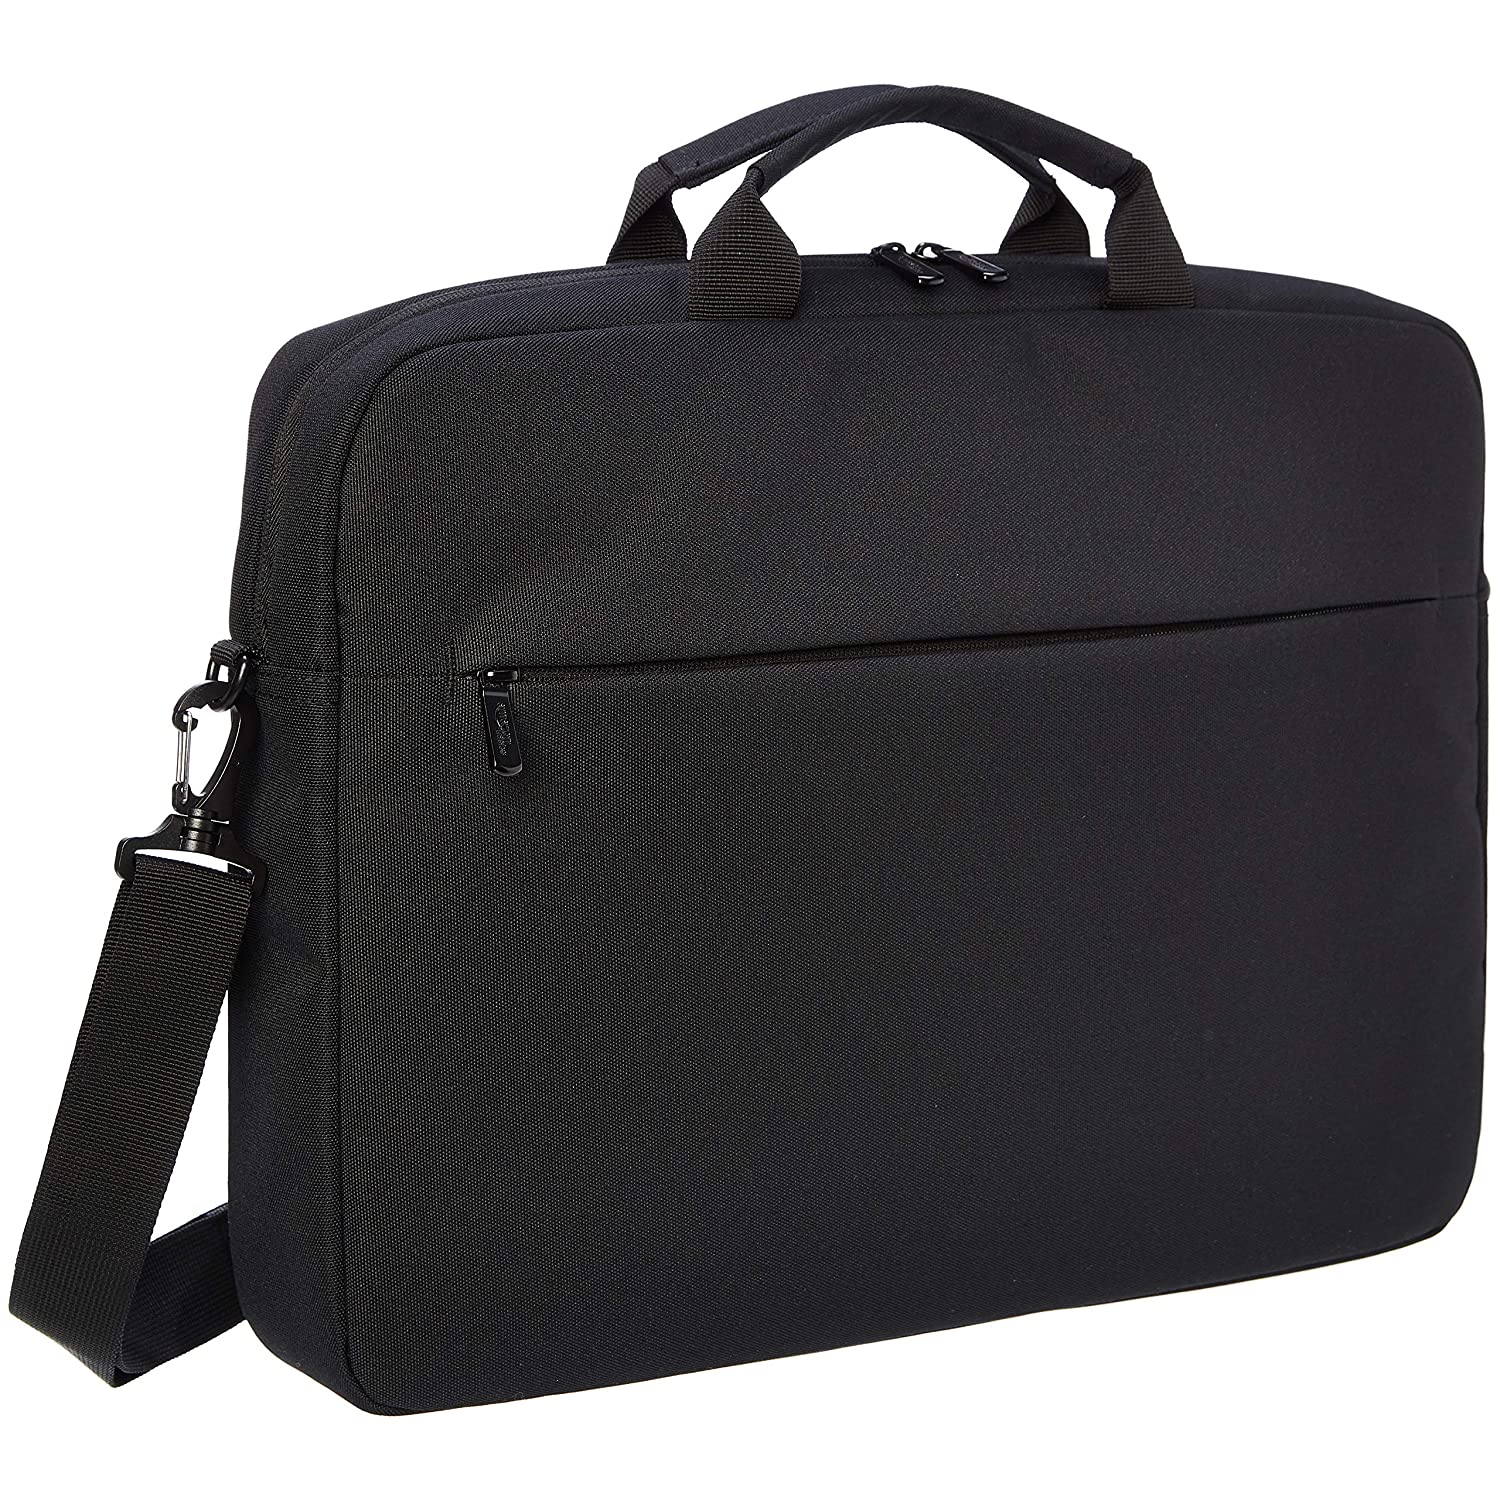 "AmazonBasics Urban Laptop and Tablet Case, 17"", Black"